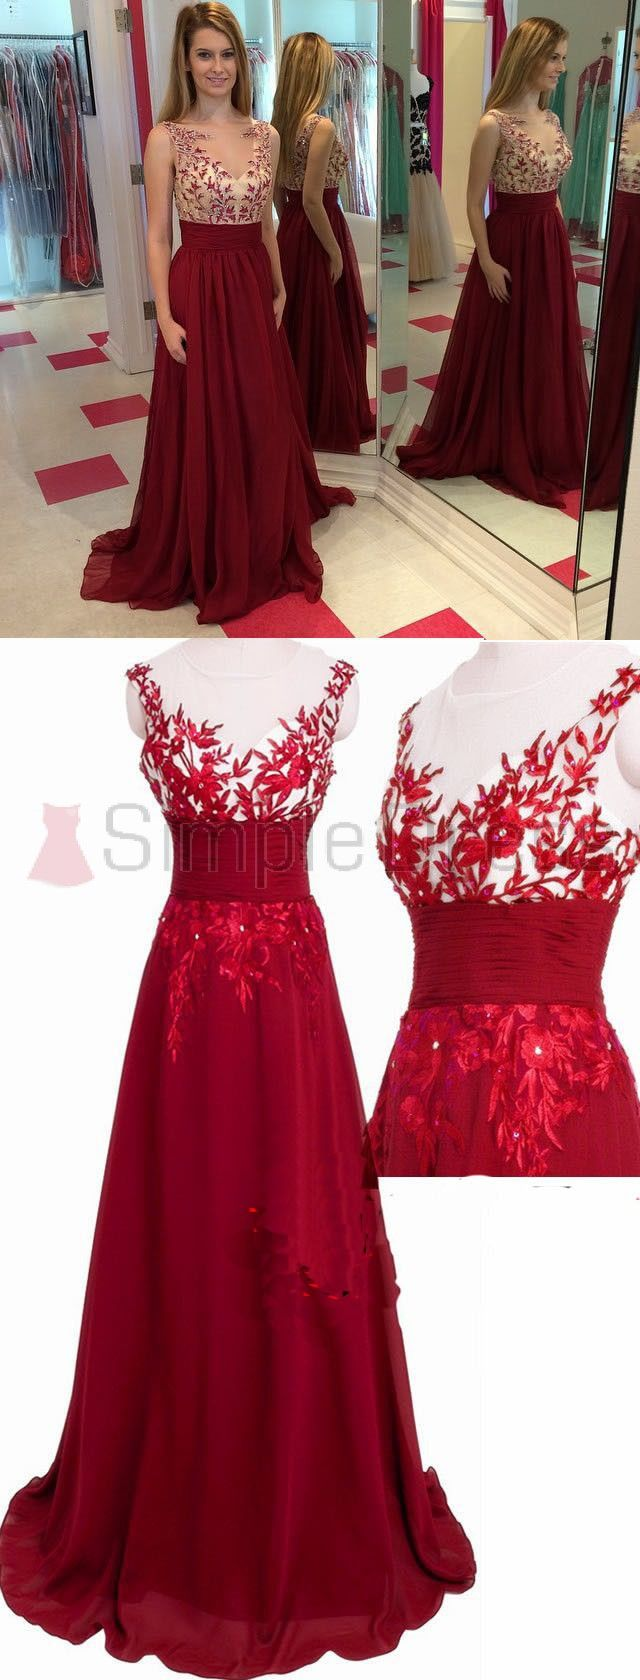 Buy Simple Dress Handmade Long Claret Scoop Applique Long Chiffon Prom Dresses/Formal Dresses/Evening Dresses CHPD-7209 Discount Prom Dresses under $162.99 only in SimpleDress.